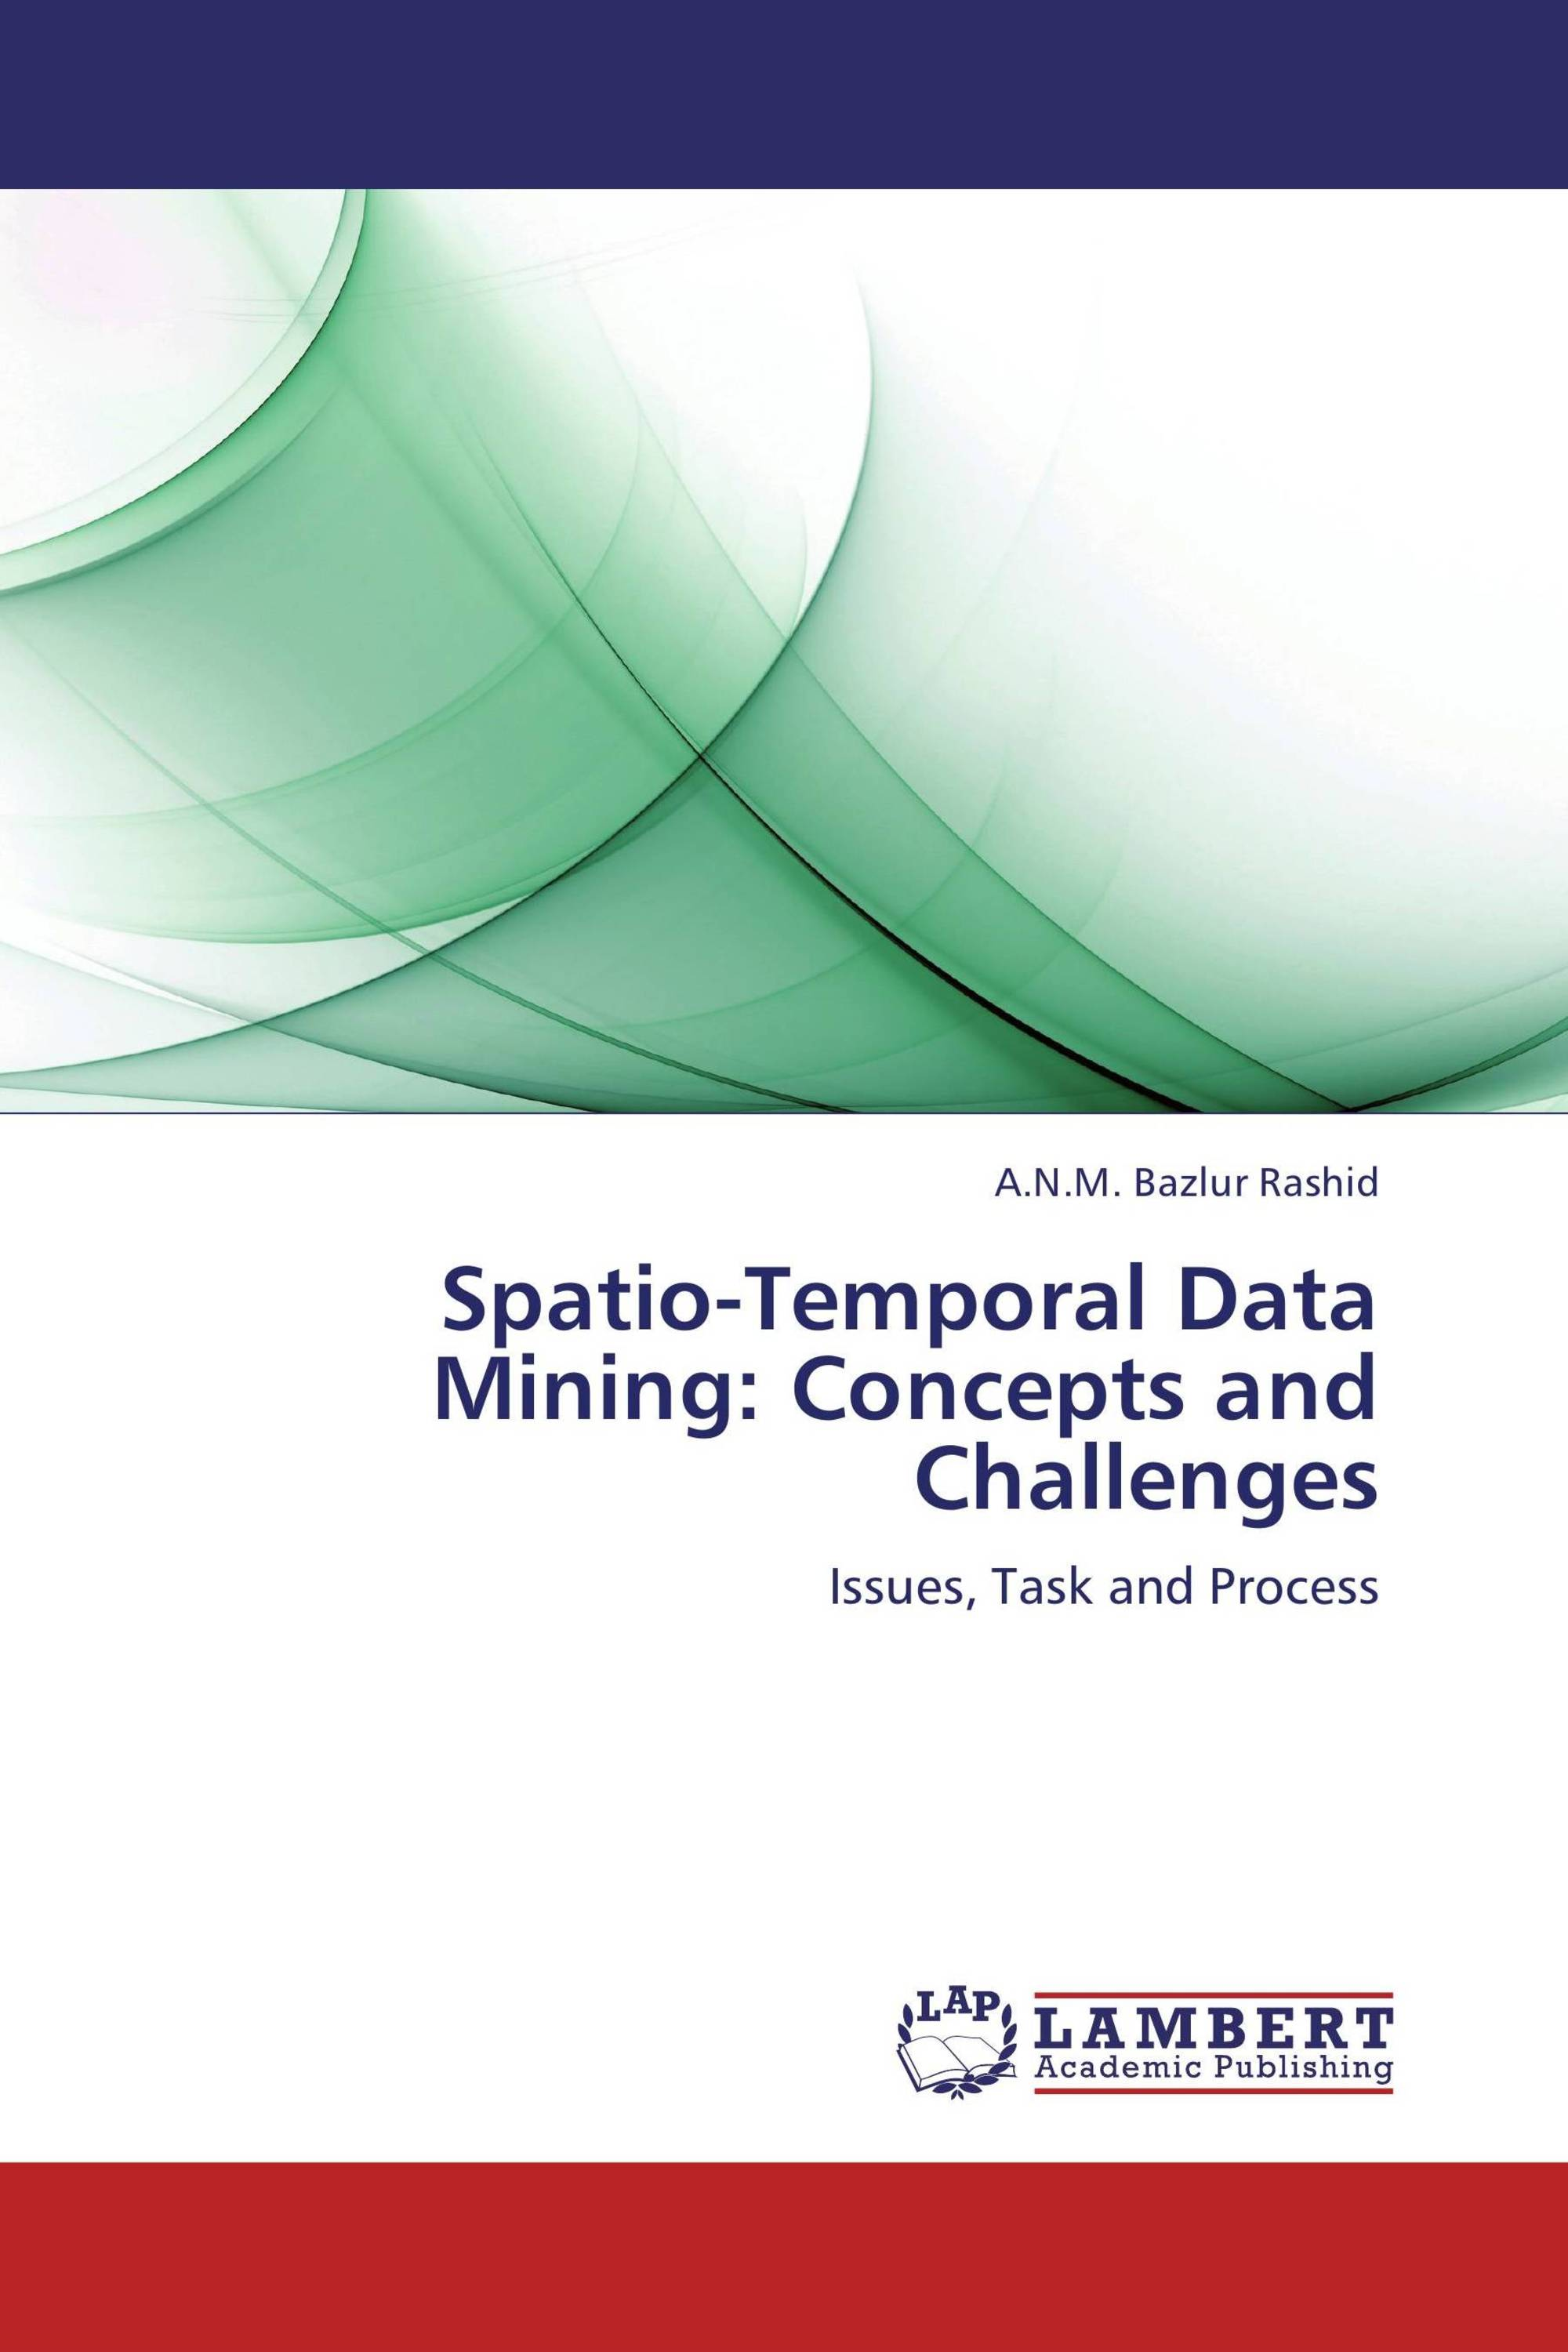 Spatio-Temporal Data Mining: Concepts and Challenges